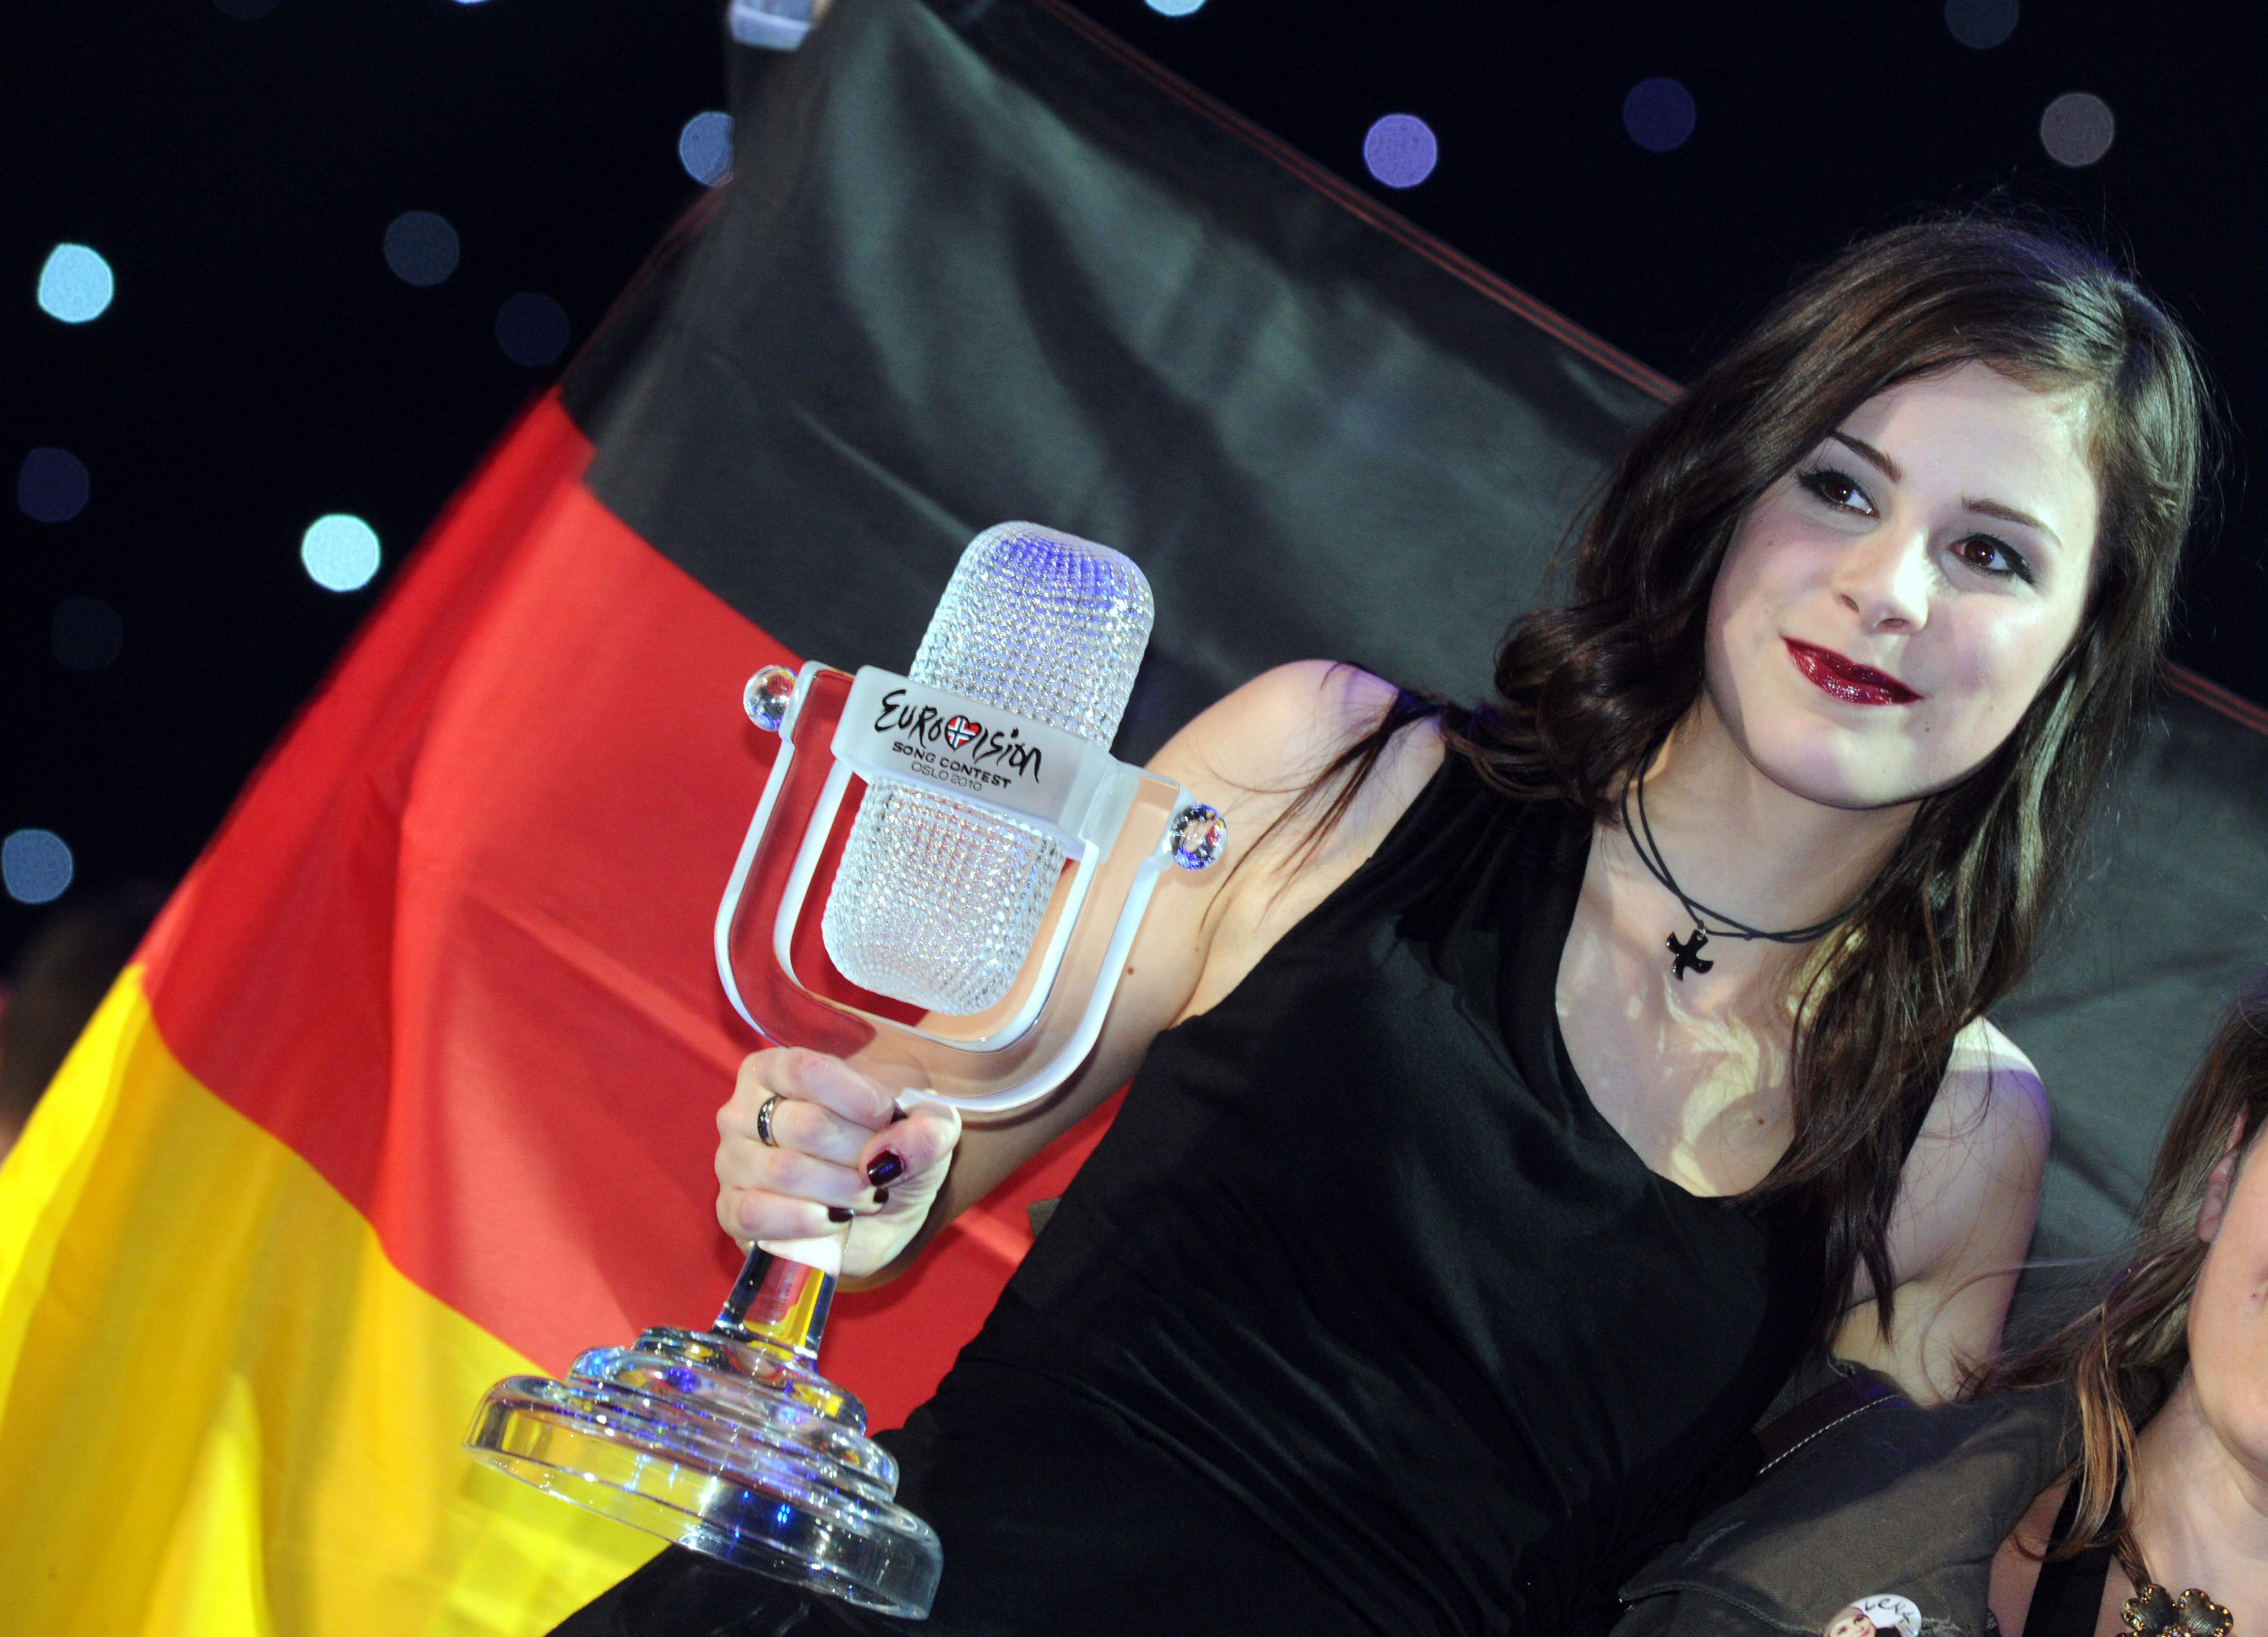 Lena Meyer Landrut Winner Of Eurovision Song Contest 2010 Hq Pics 09 Gotceleb